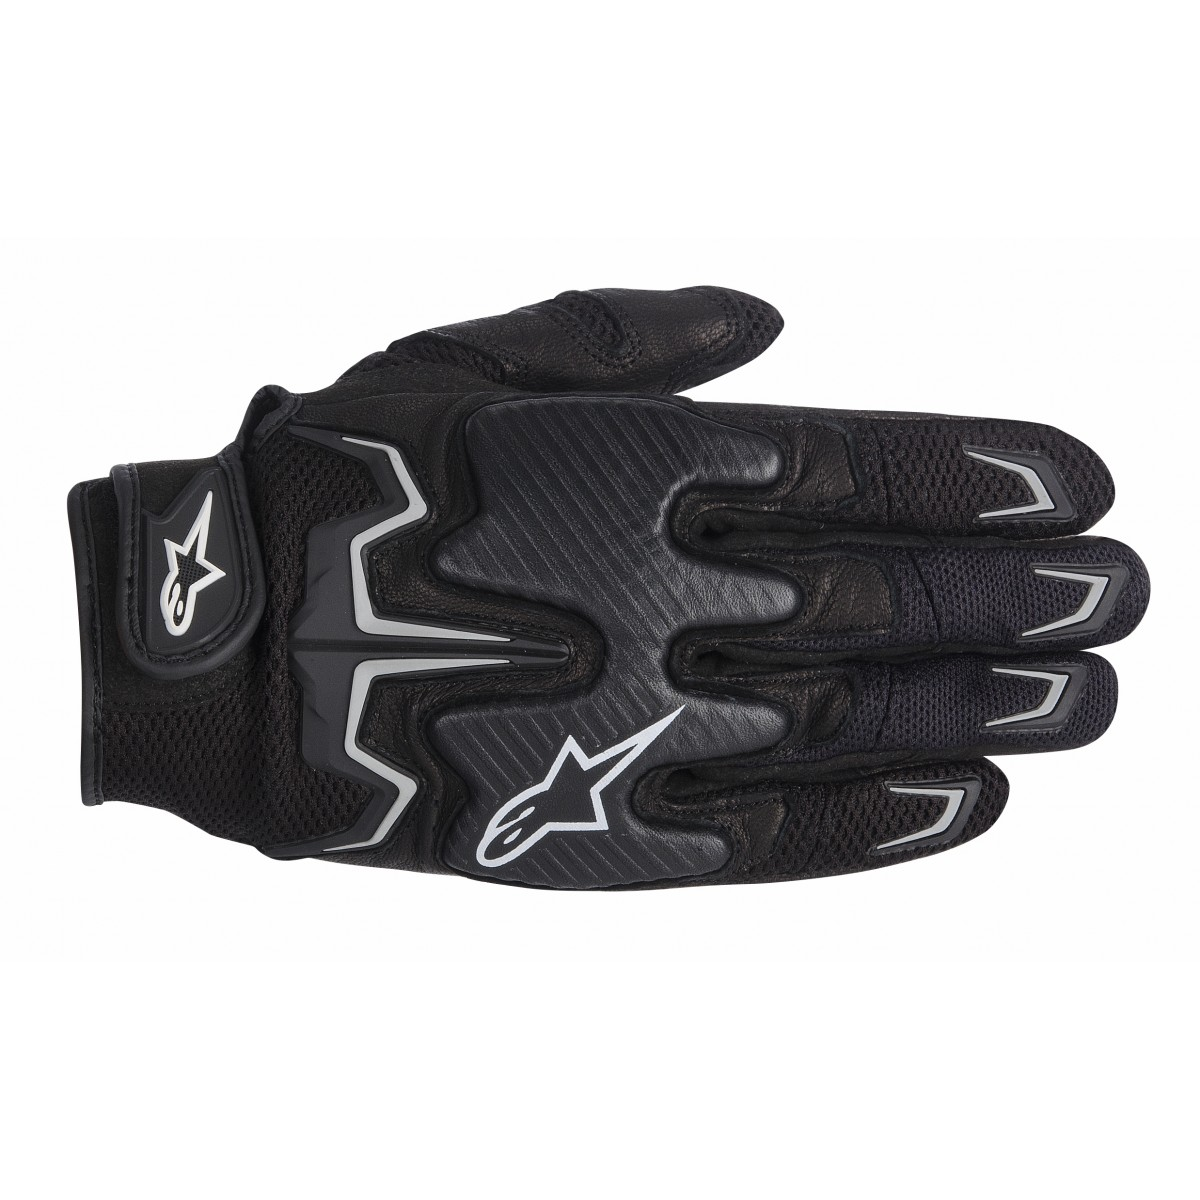 Luva Alpinestars Fighter Air Black  - Super Bike - Loja Oficial Alpinestars